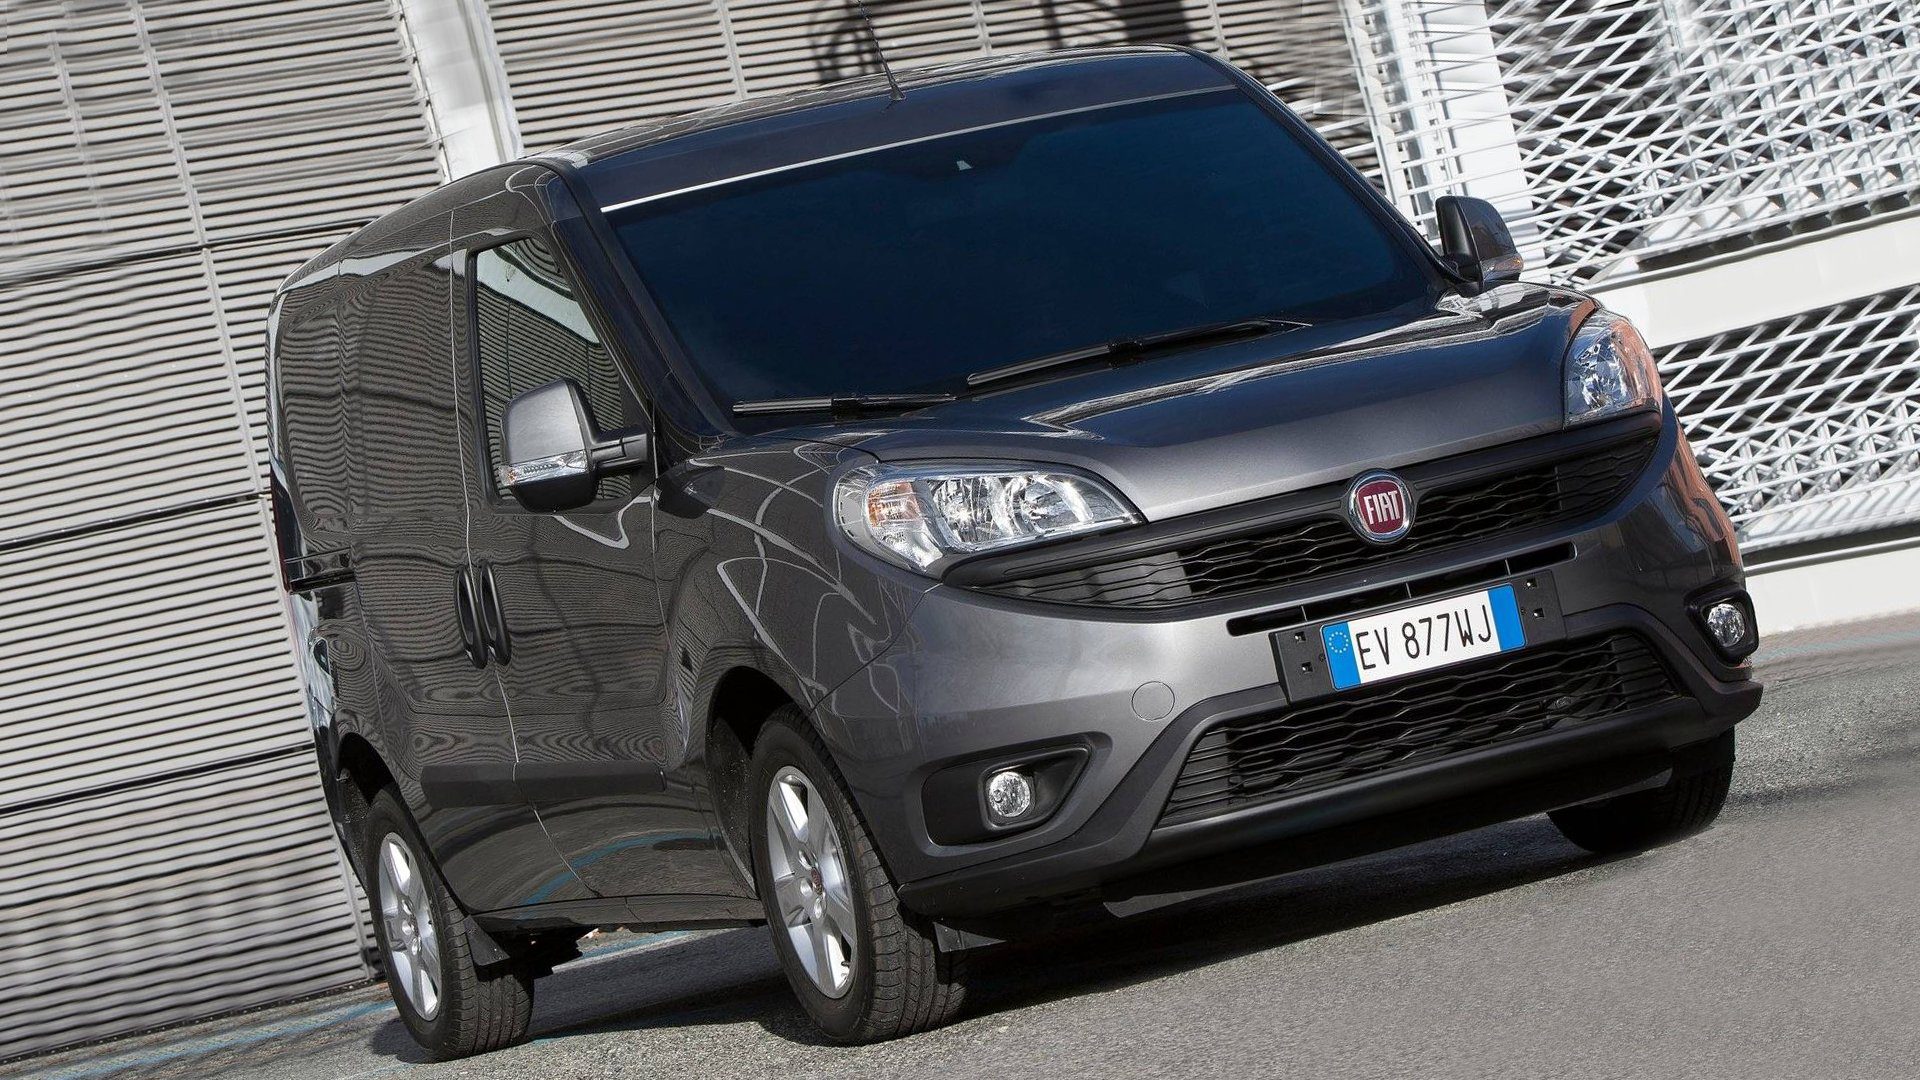 Black Fiat Doblo HD